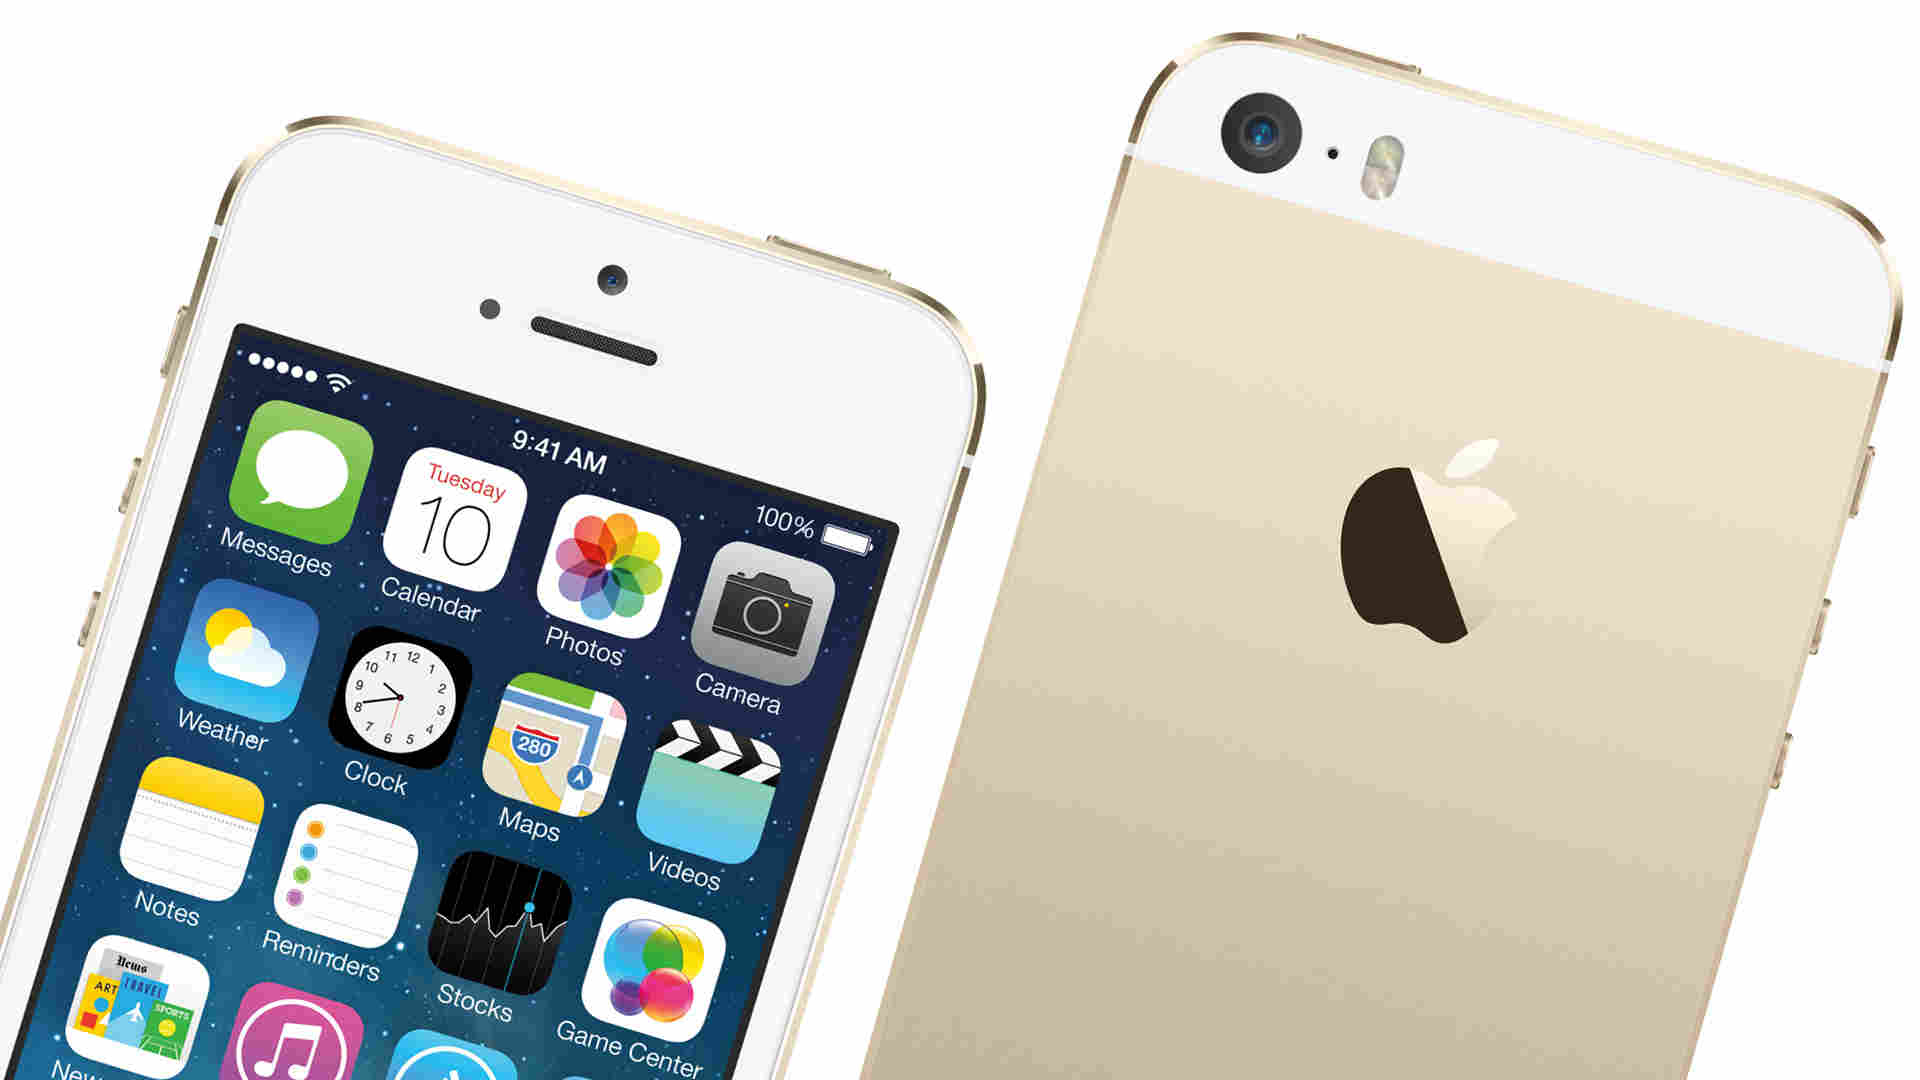 apple iphone 5s price in nepal gadgets in nepal. Black Bedroom Furniture Sets. Home Design Ideas